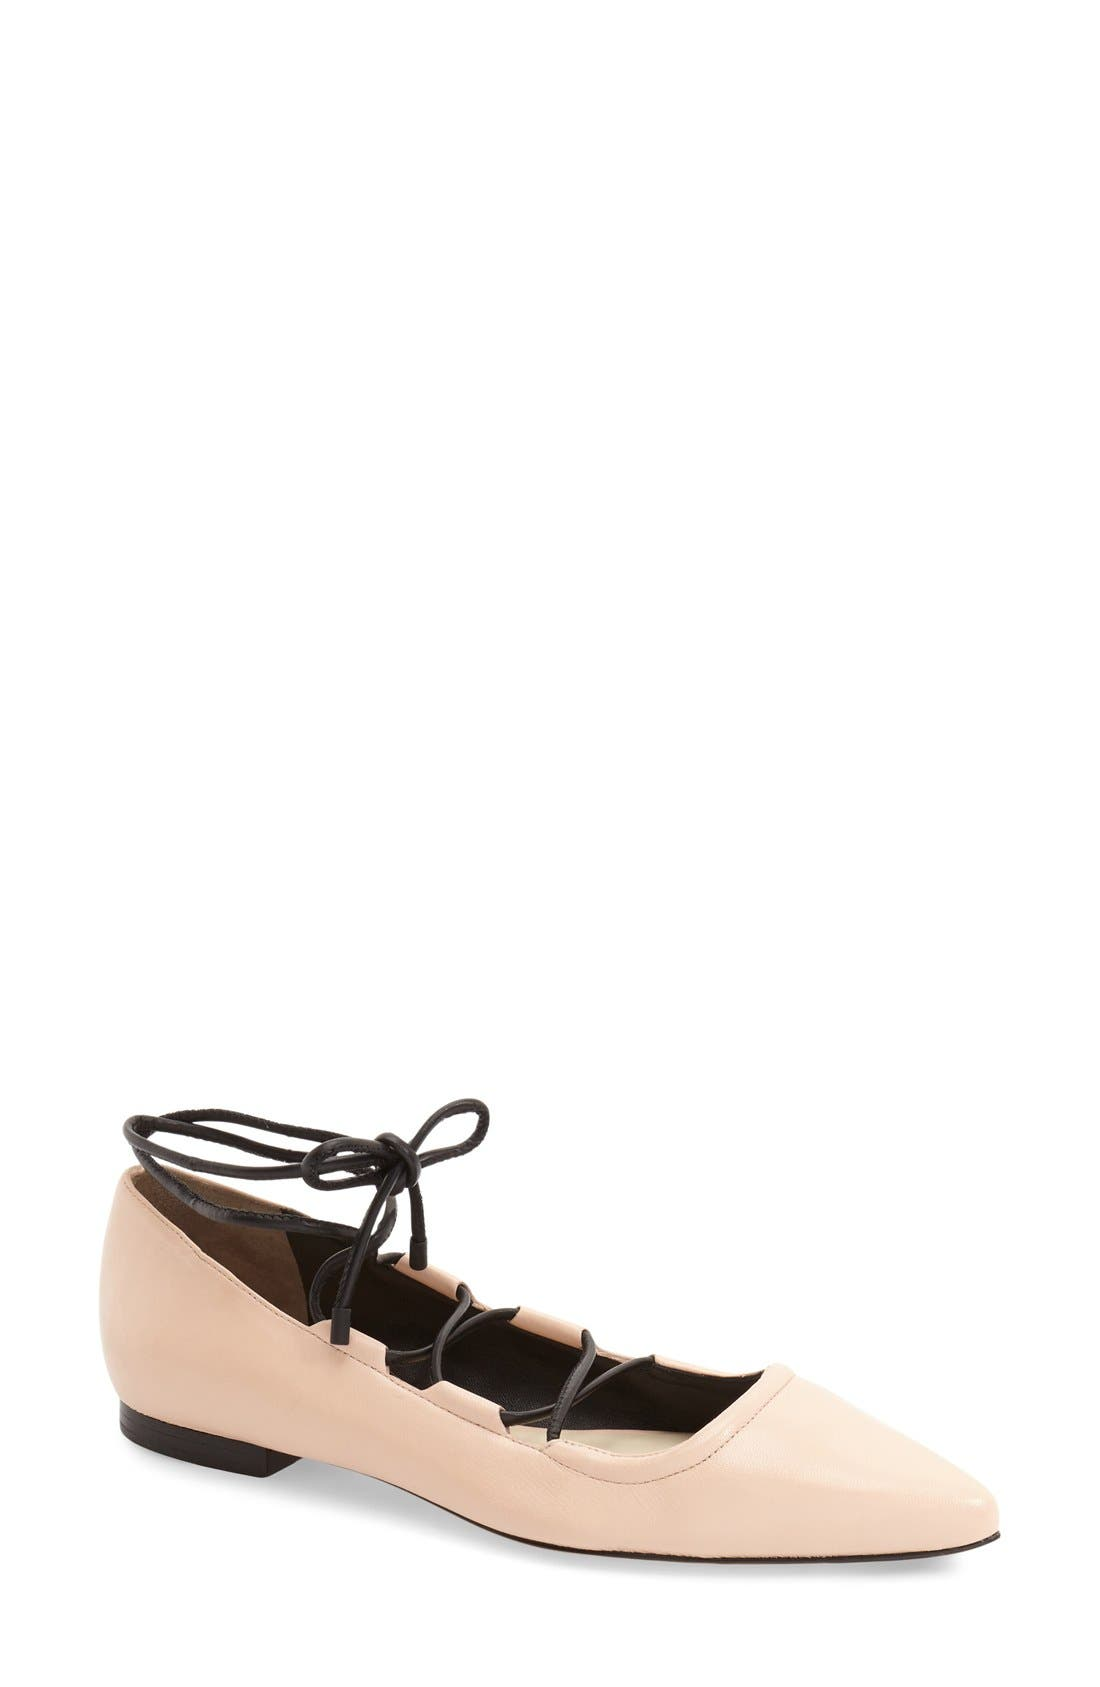 Main Image - 3.1 Phillip Lim 'Martini' Lace-Up Flat (Women)